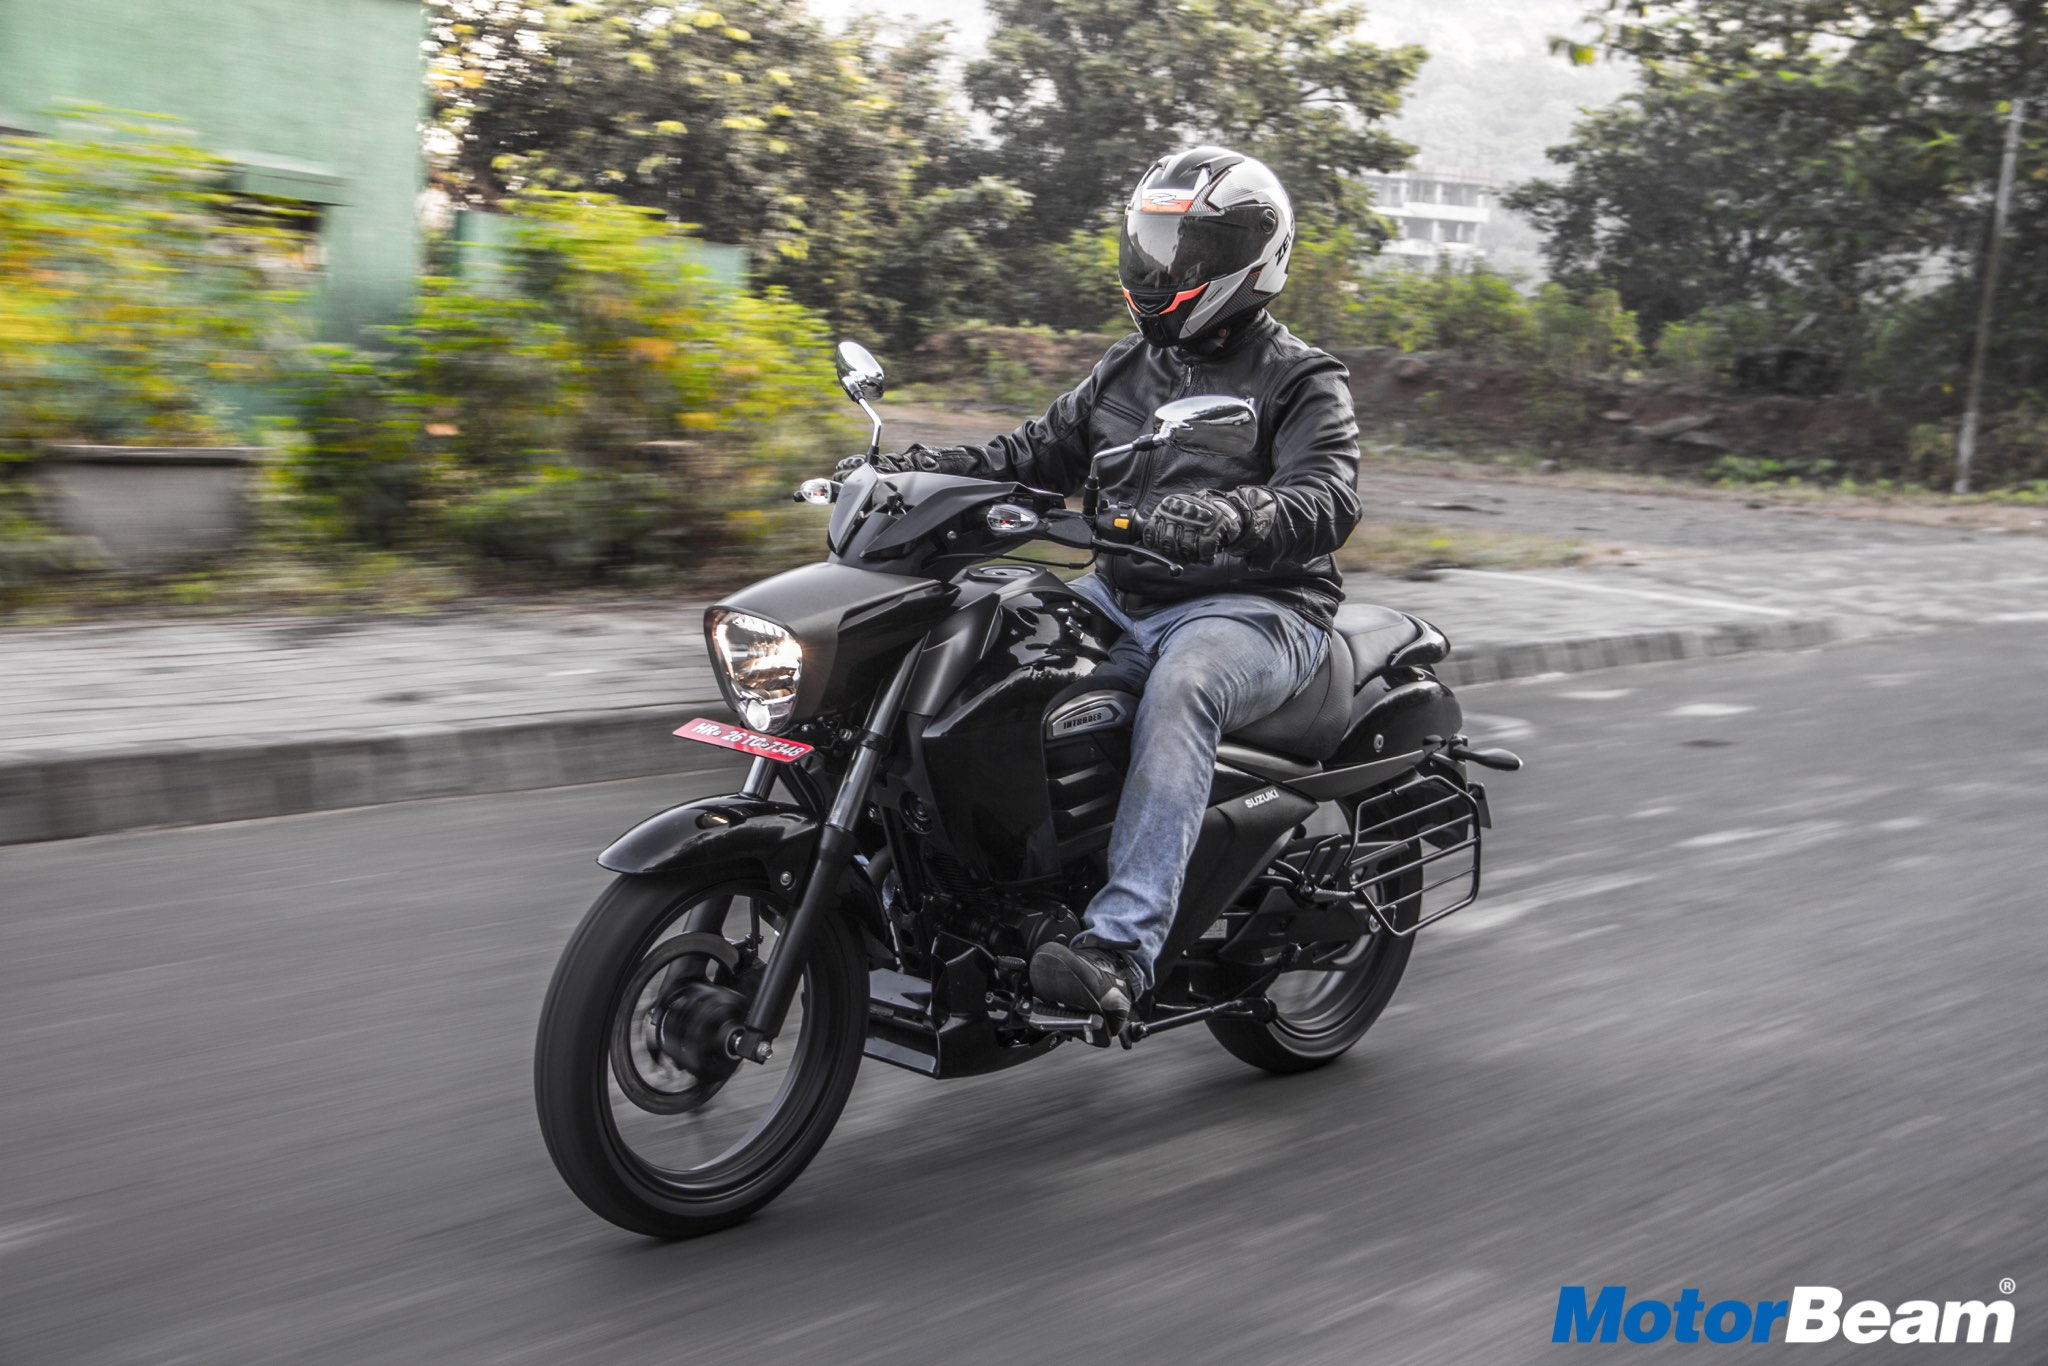 2017 Suzuki Intruder 150 Review Test Ride